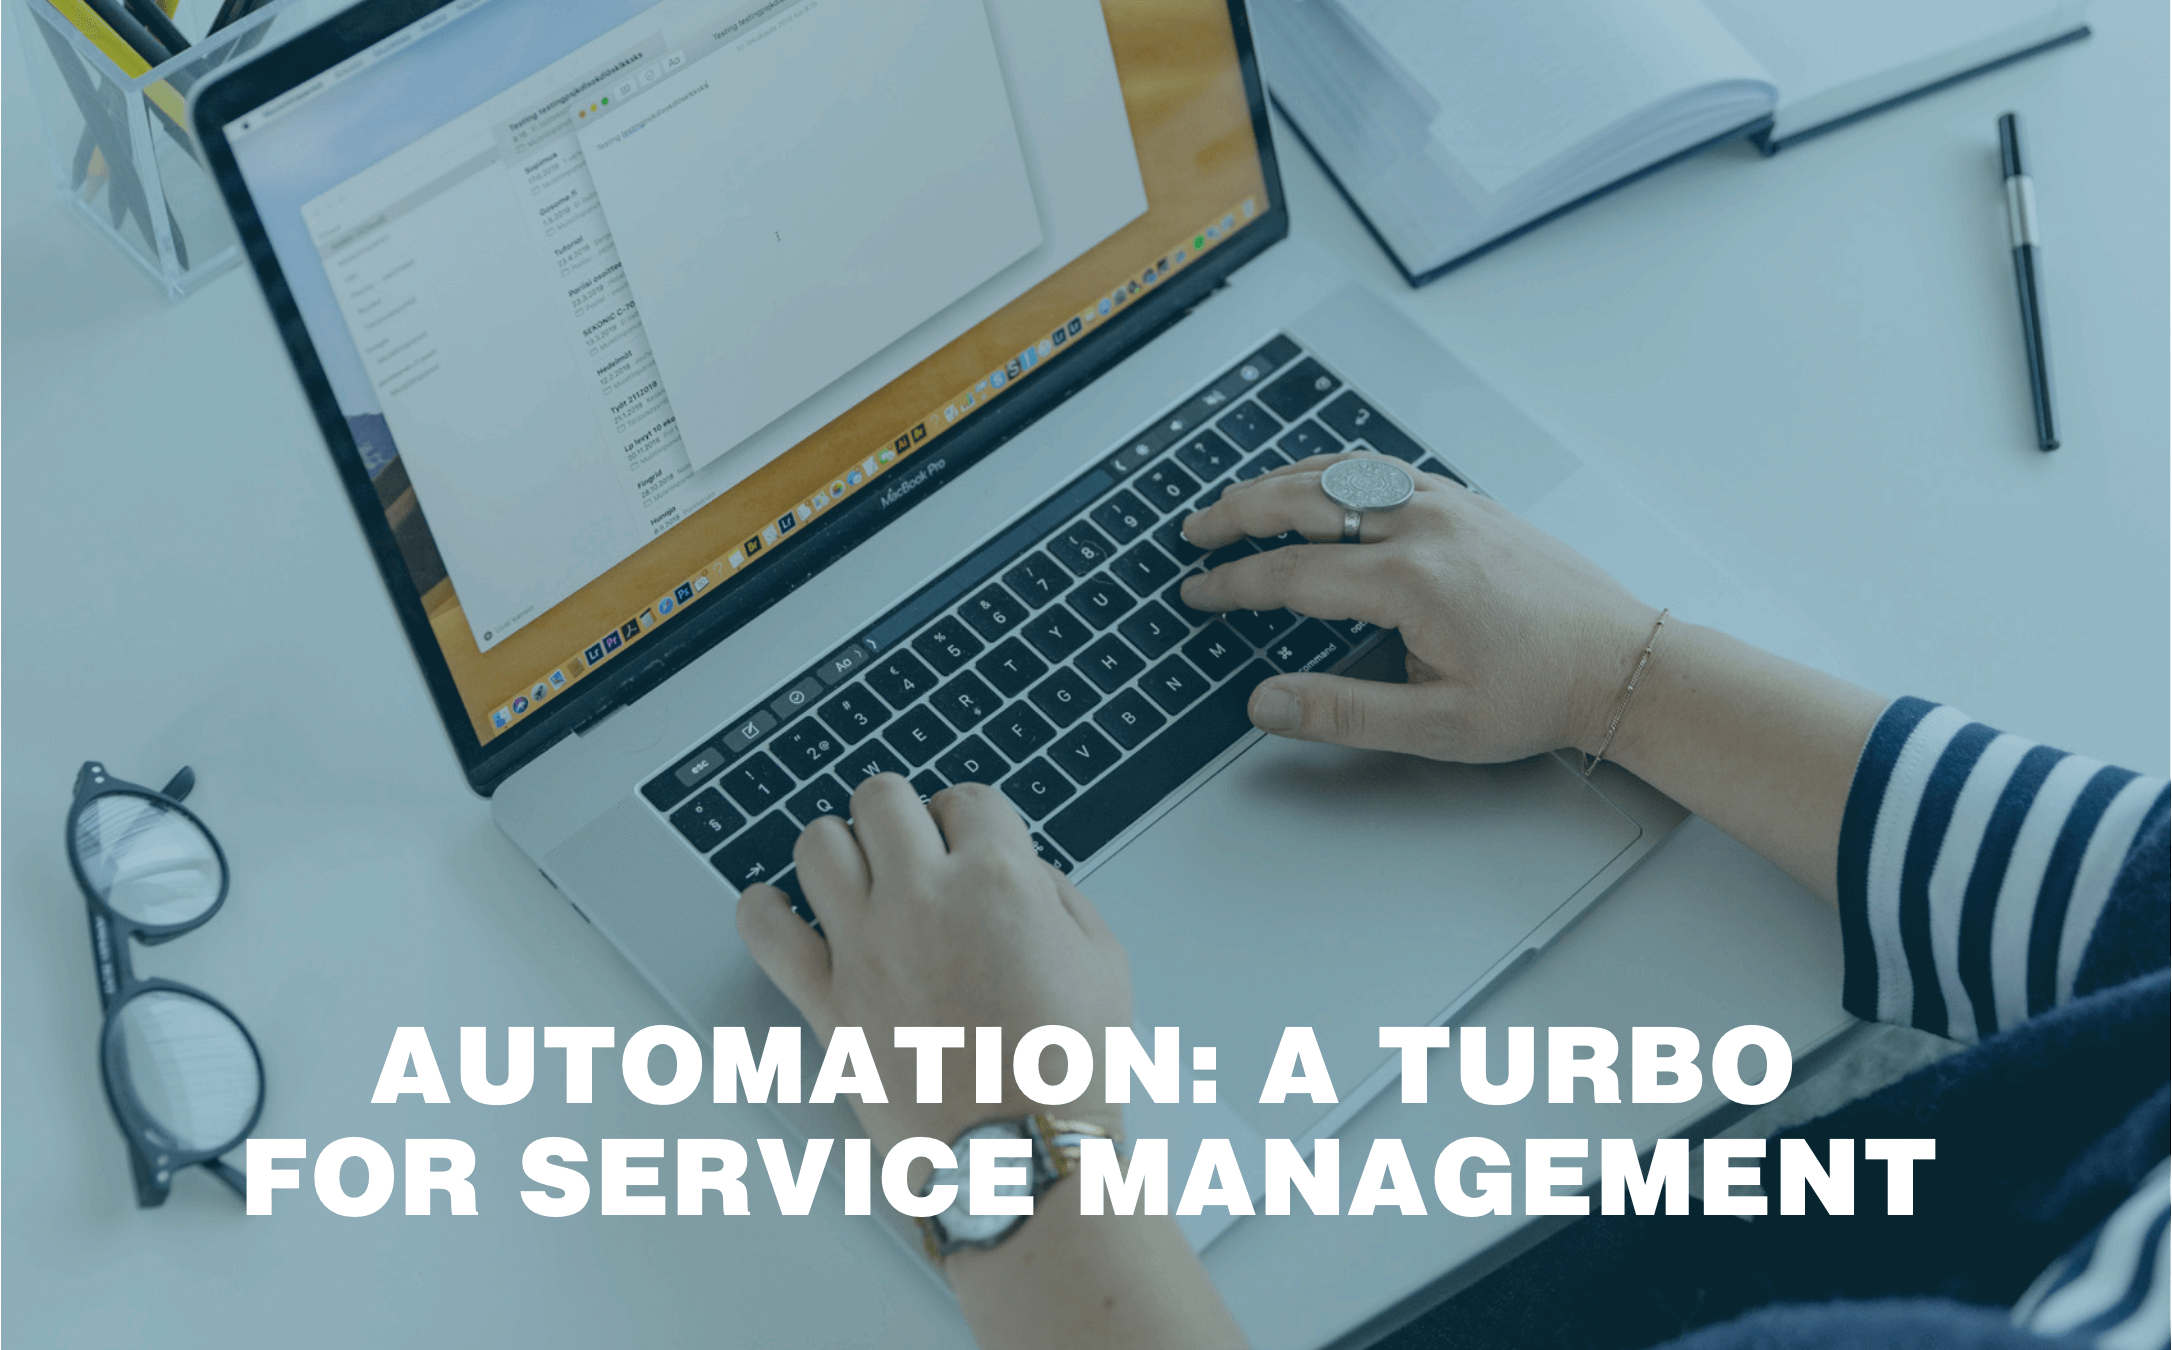 Automation: a turbo for service management